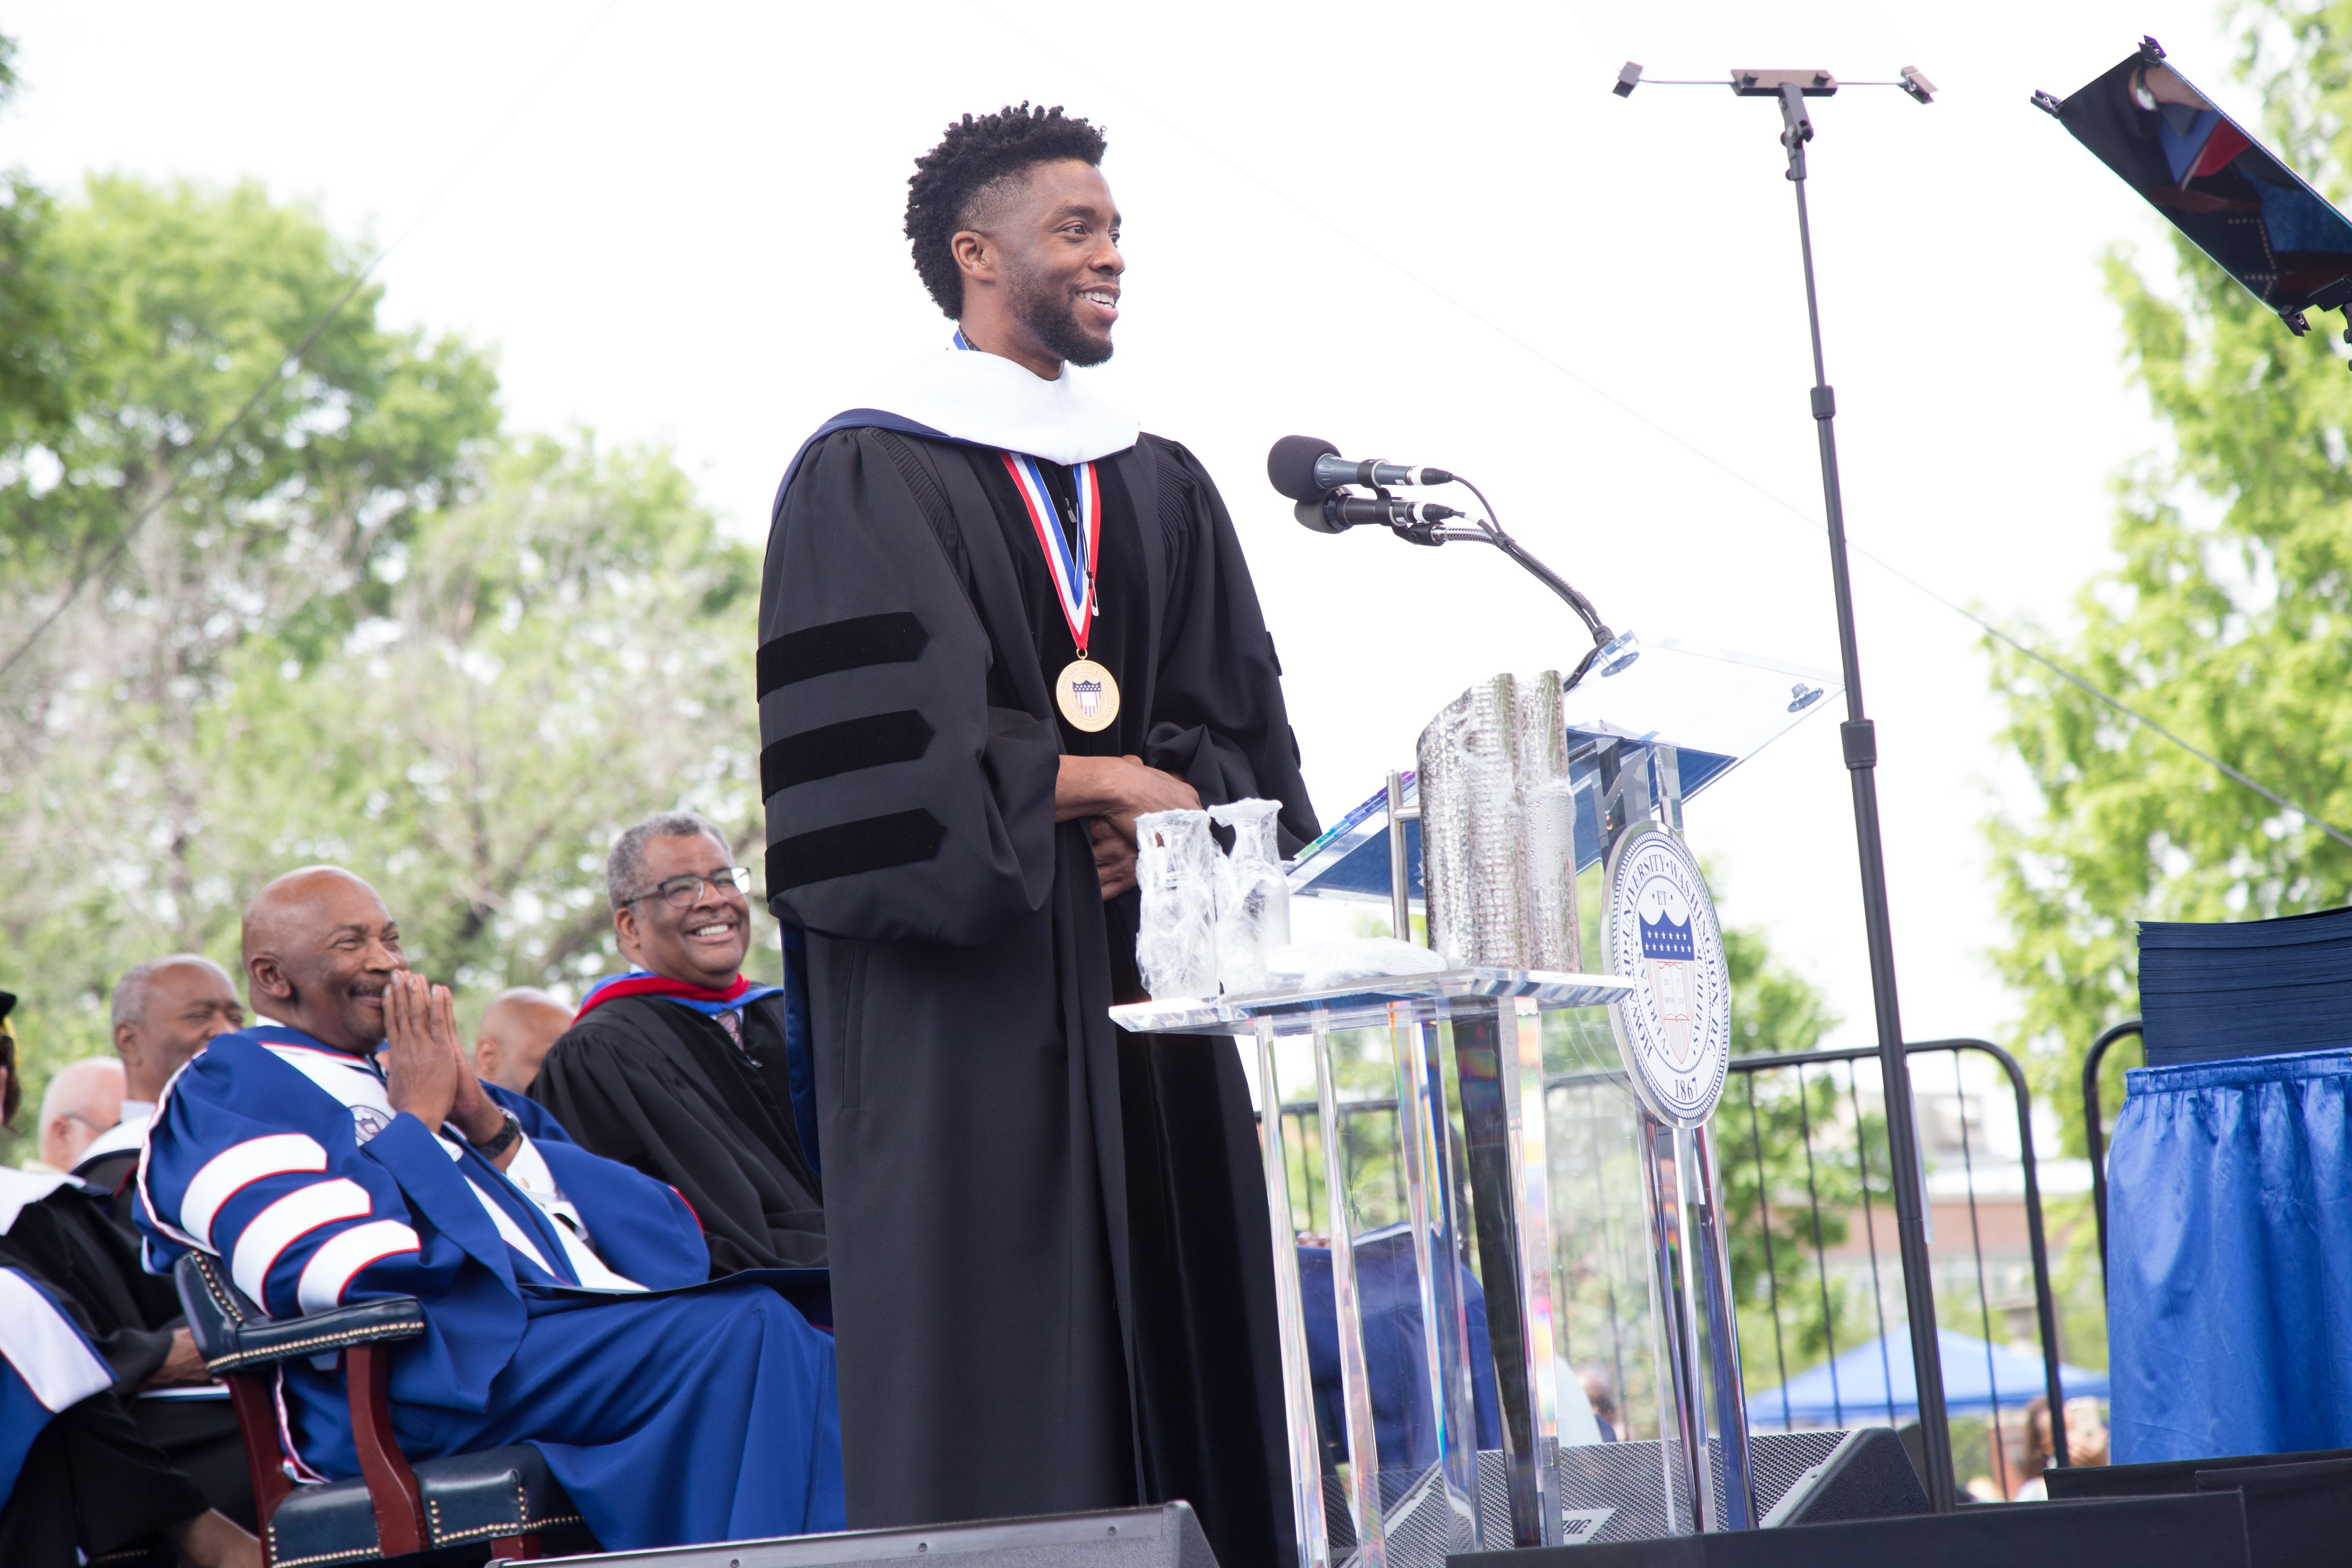 Chadwick Boseman, a Howard alumnus, receiving an Honorary Doctorate Degree at the 2018 Howard University Commencement Ceremony at Howard University in Washington, DC | Photo: Brian Stukes/Getty Images